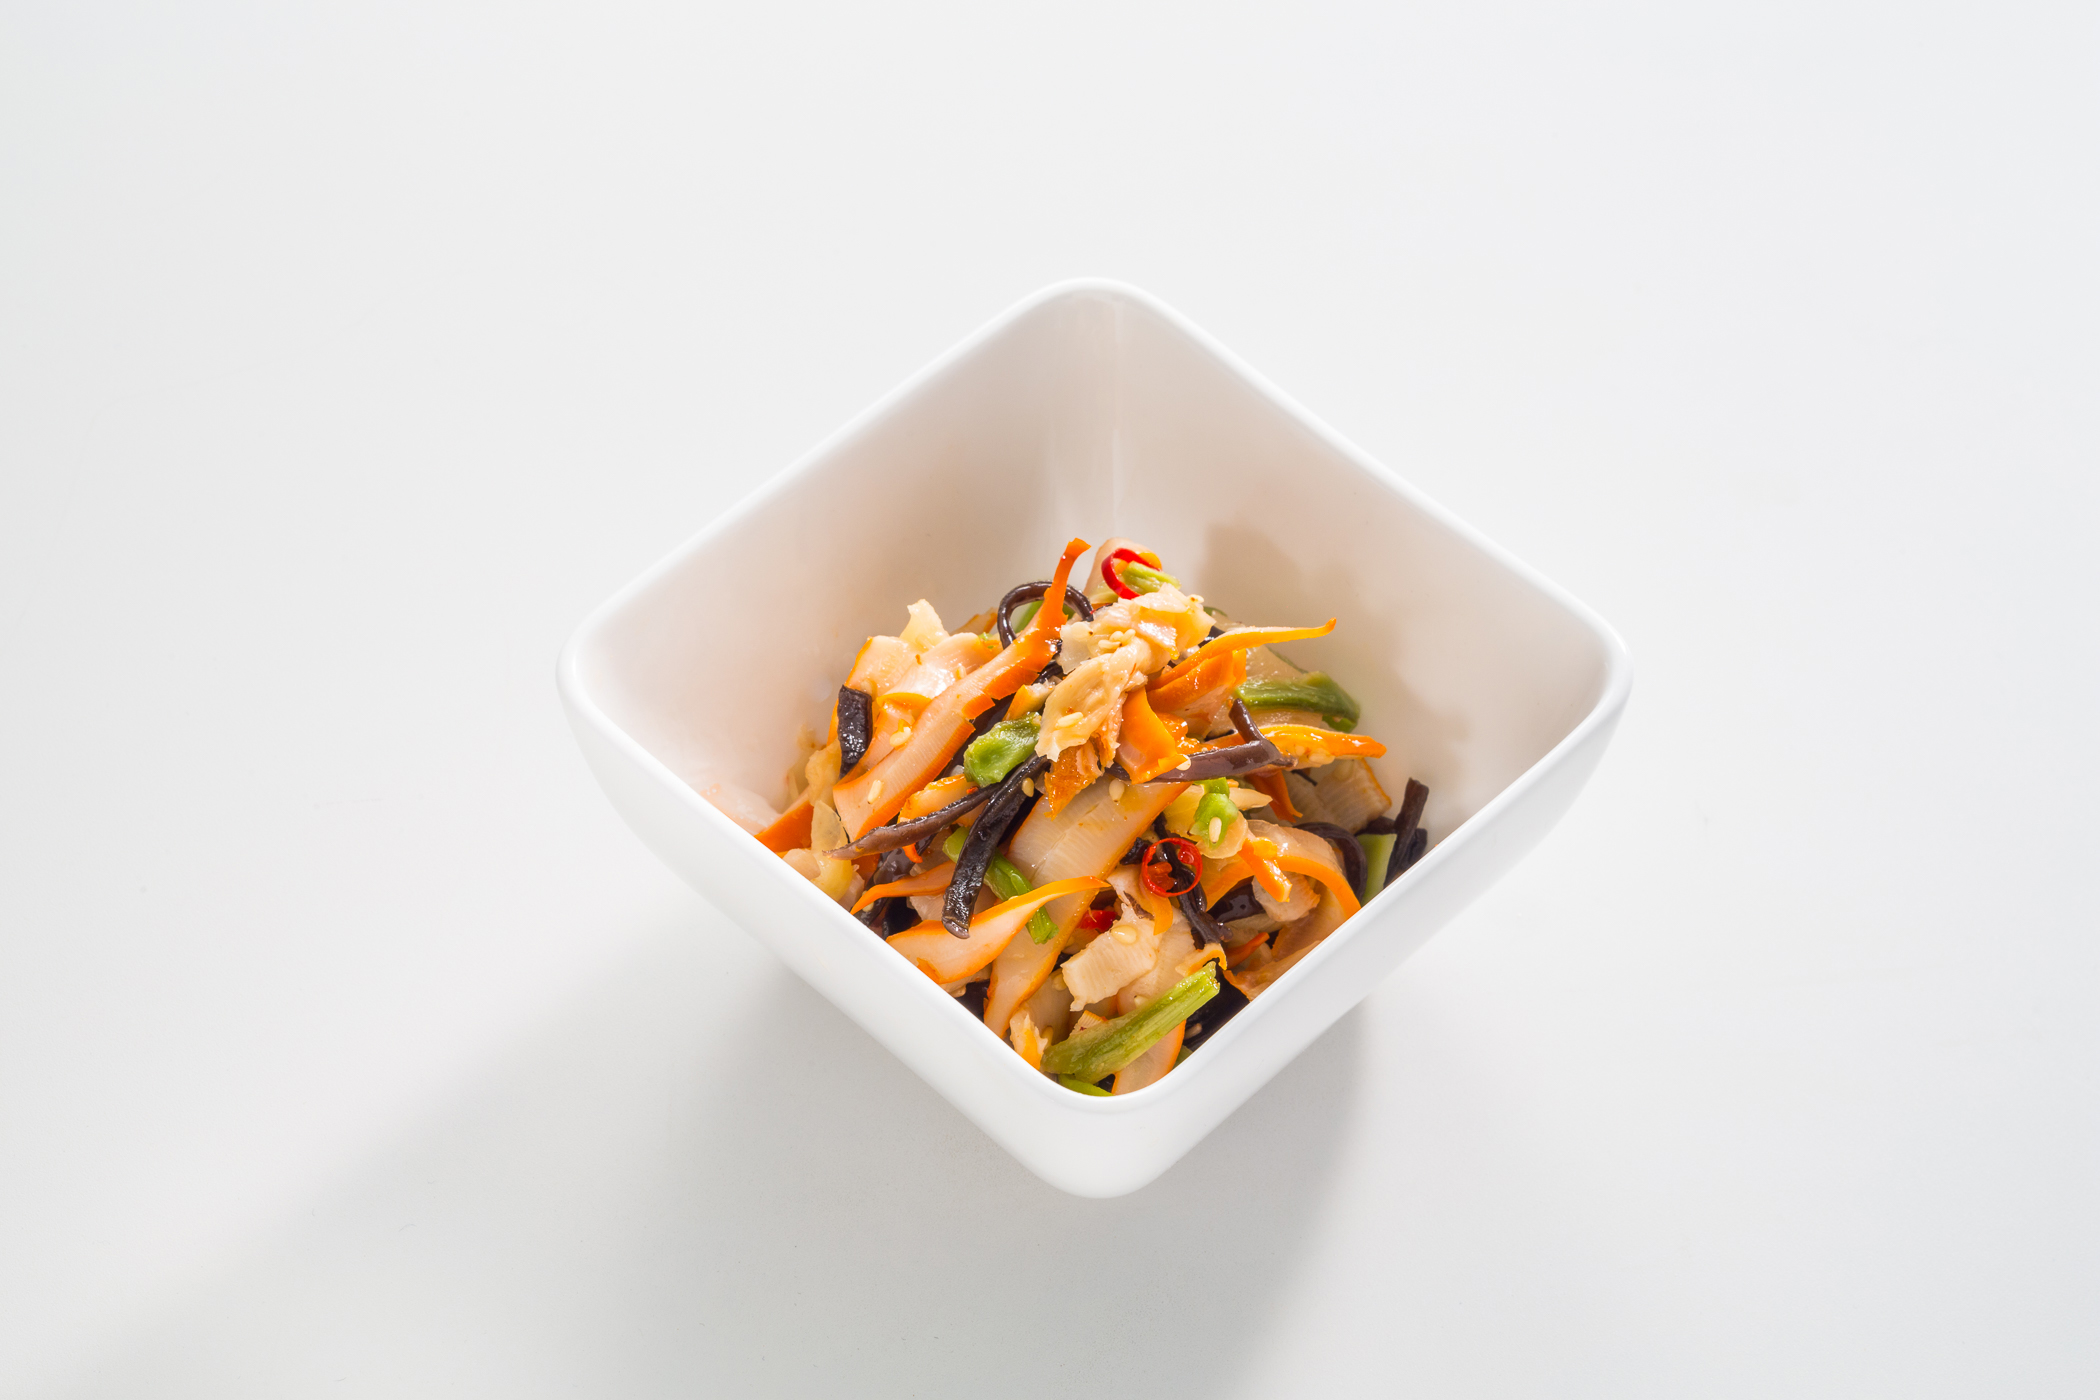 Ika Sansai (Squid Salad)